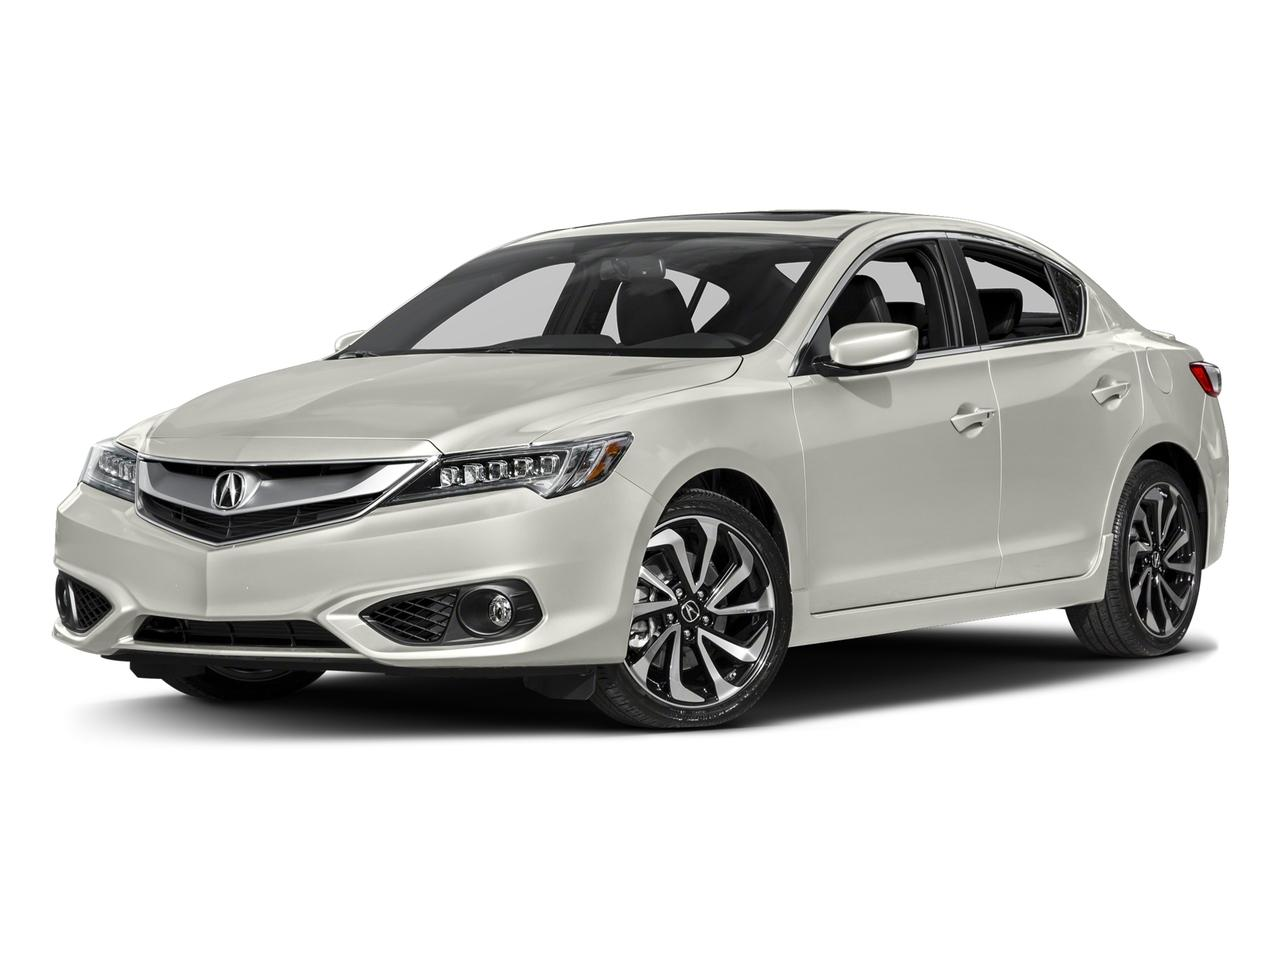 2017 Acura ILX Vehicle Photo in Mission, TX 78572